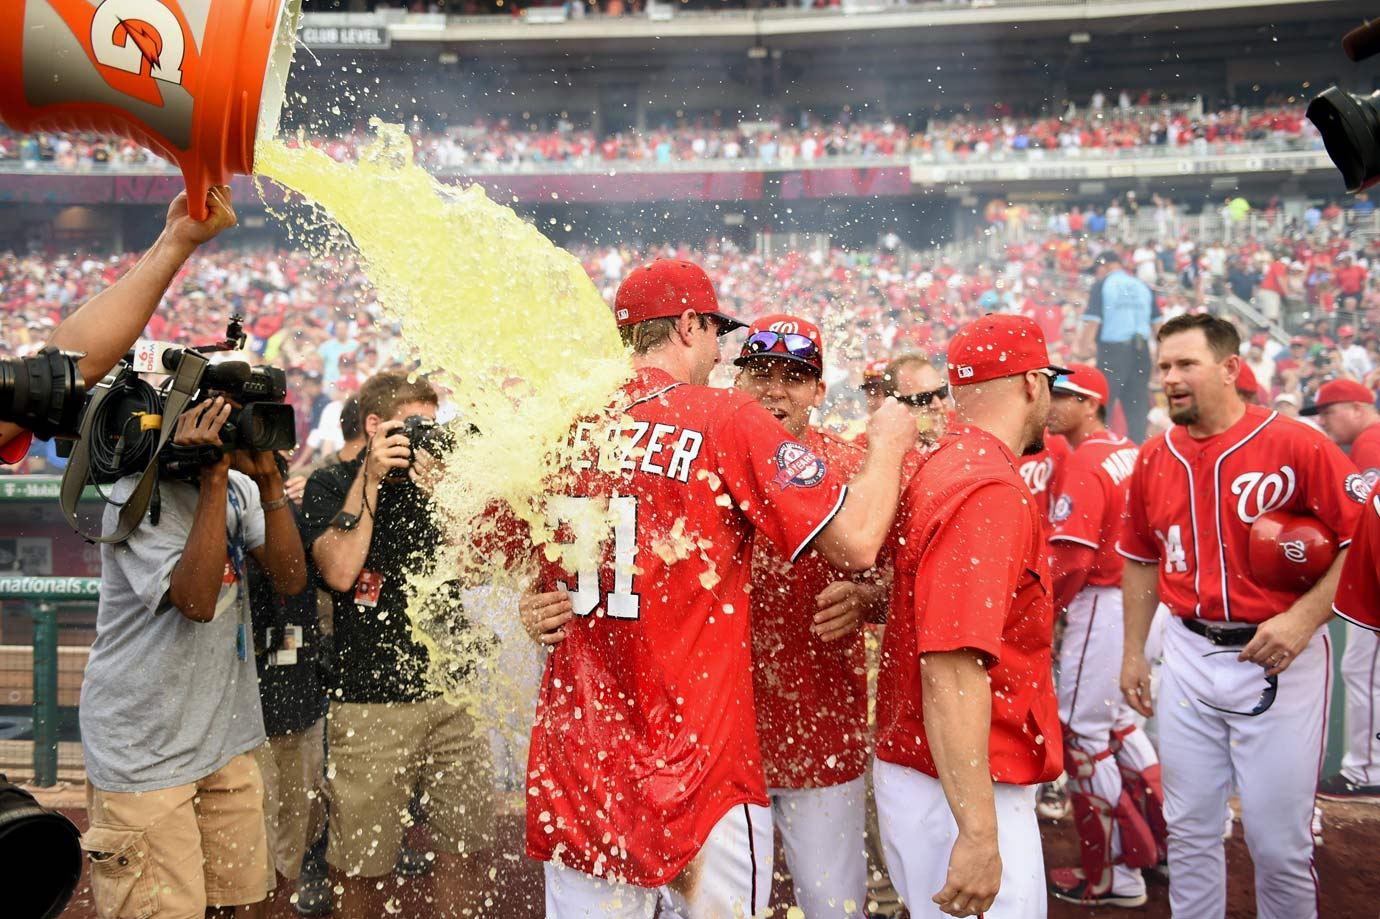 June 20, 2015 — Nationals over Pirates (no-hitter)